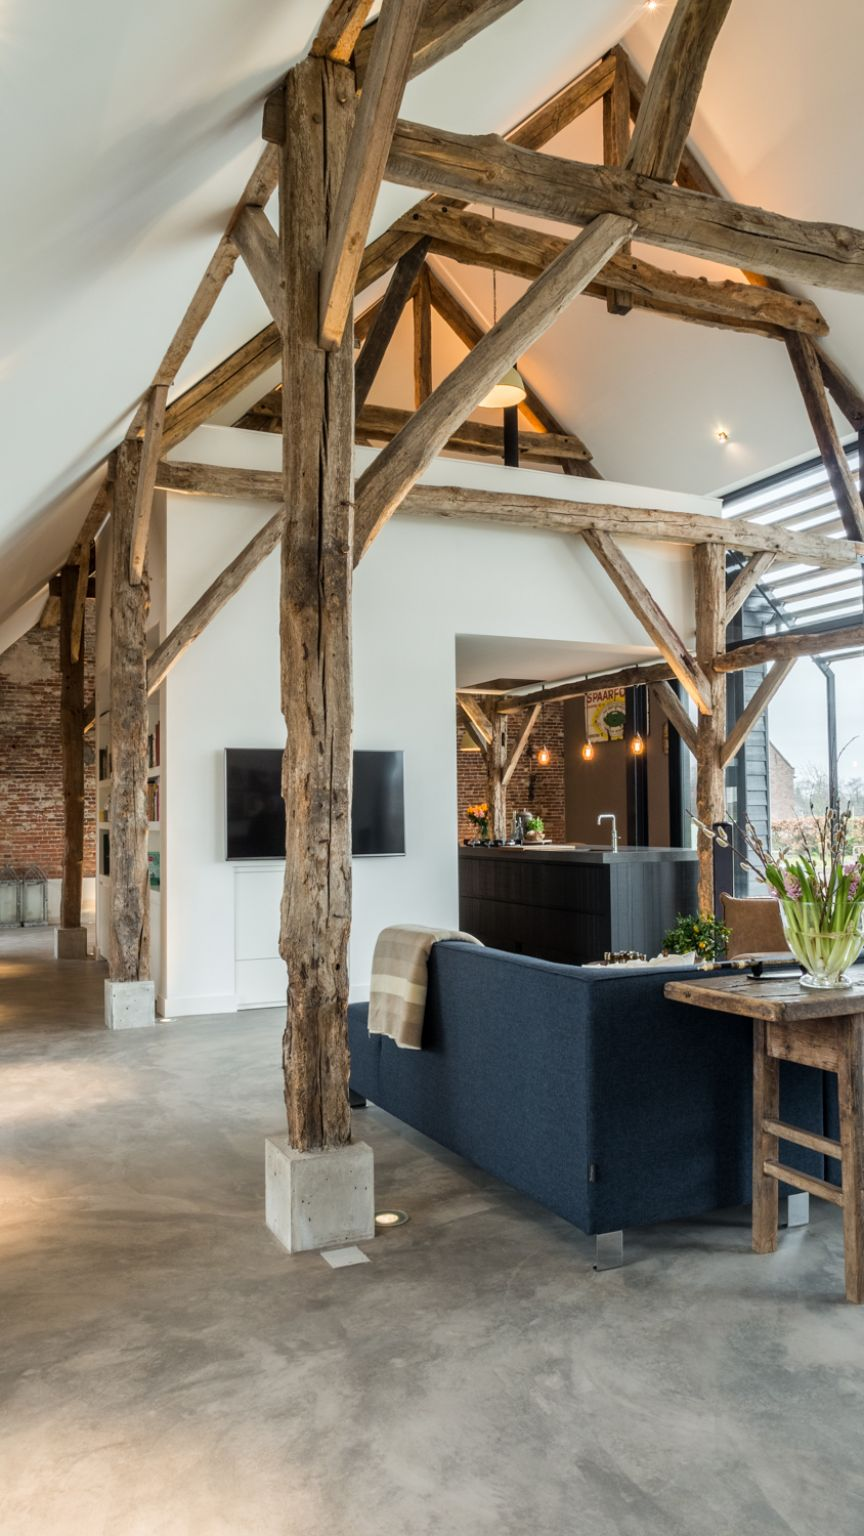 The high ceiling and exposed wooden beams are a wonderful combination which gives the living area lots of character